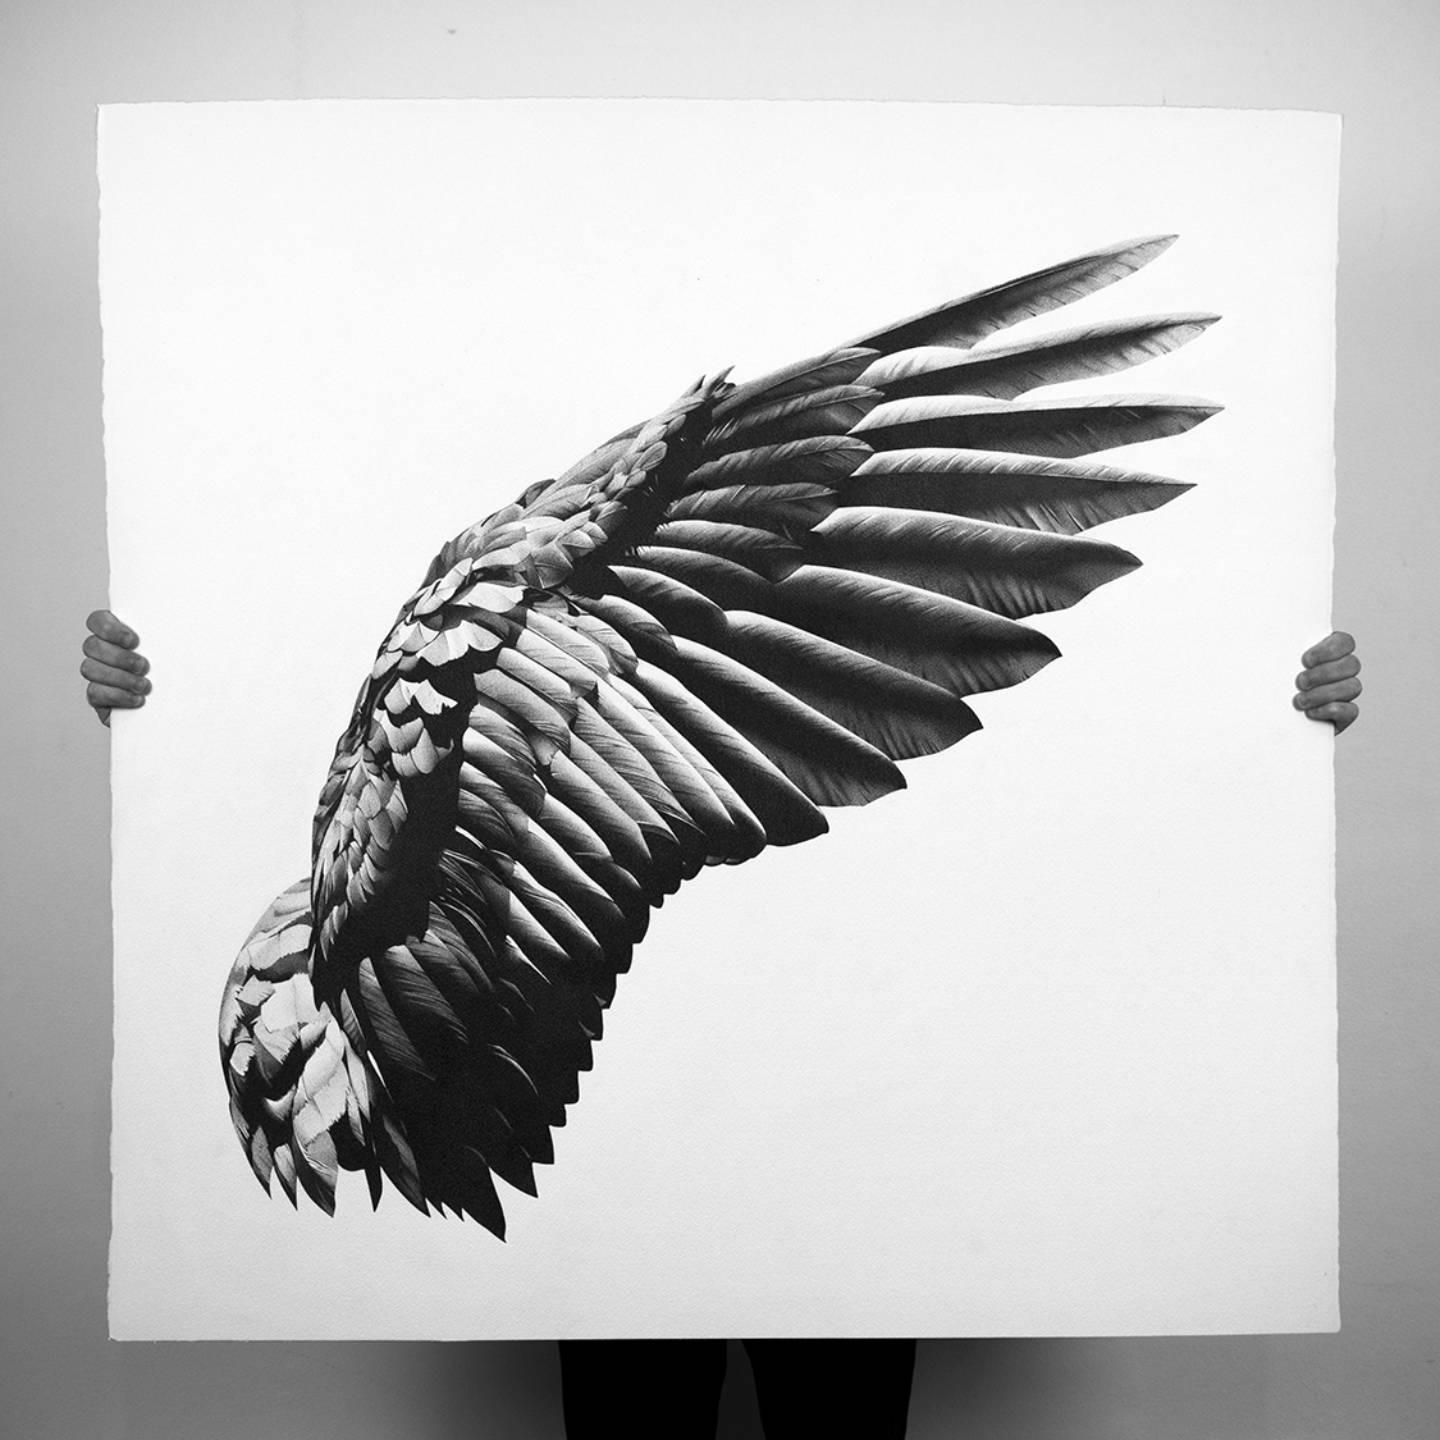 Realistic Black wing drawing by Alessandro Paglia